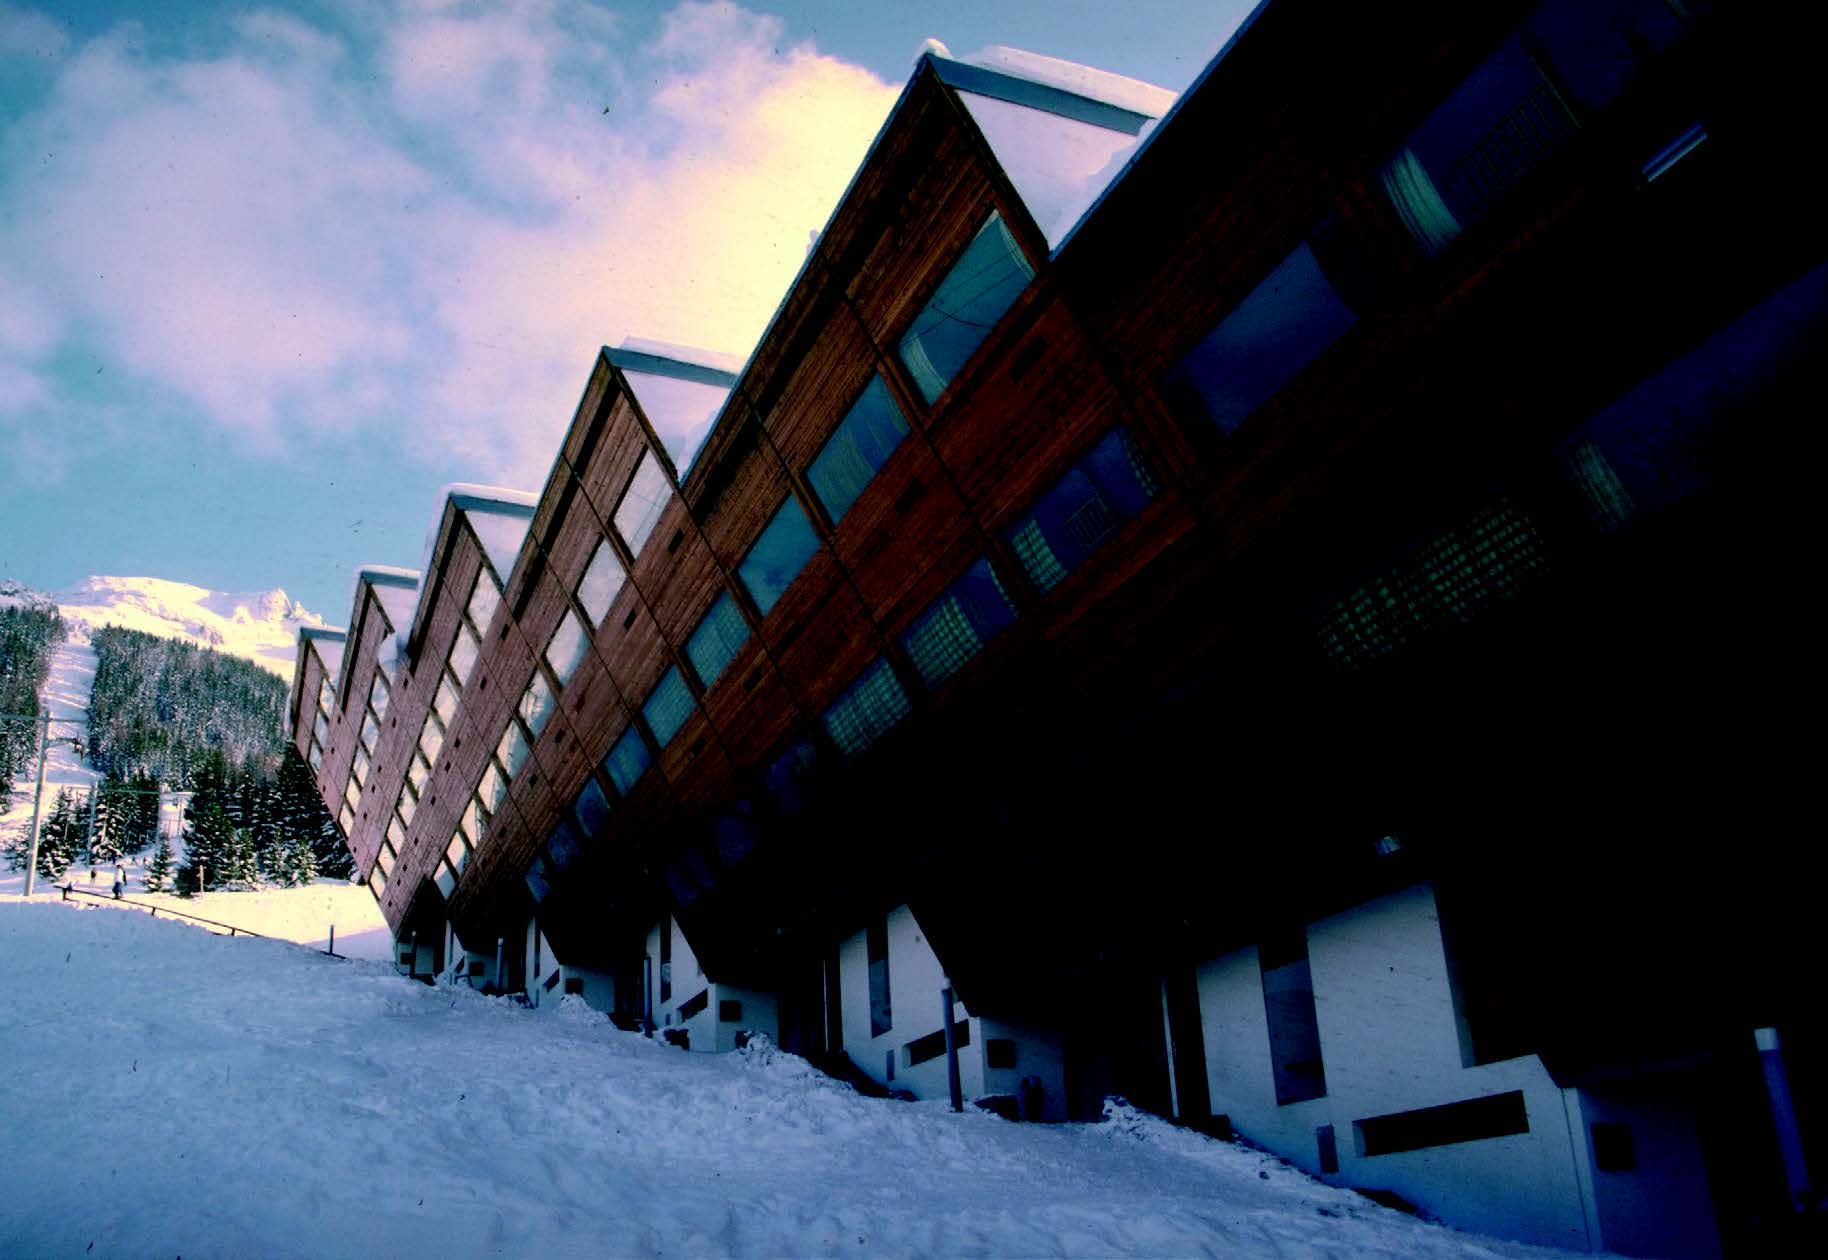 Les Arcs, the French ski resort designed by a group of architects in 1967-1969 led by Charlotte Perriand